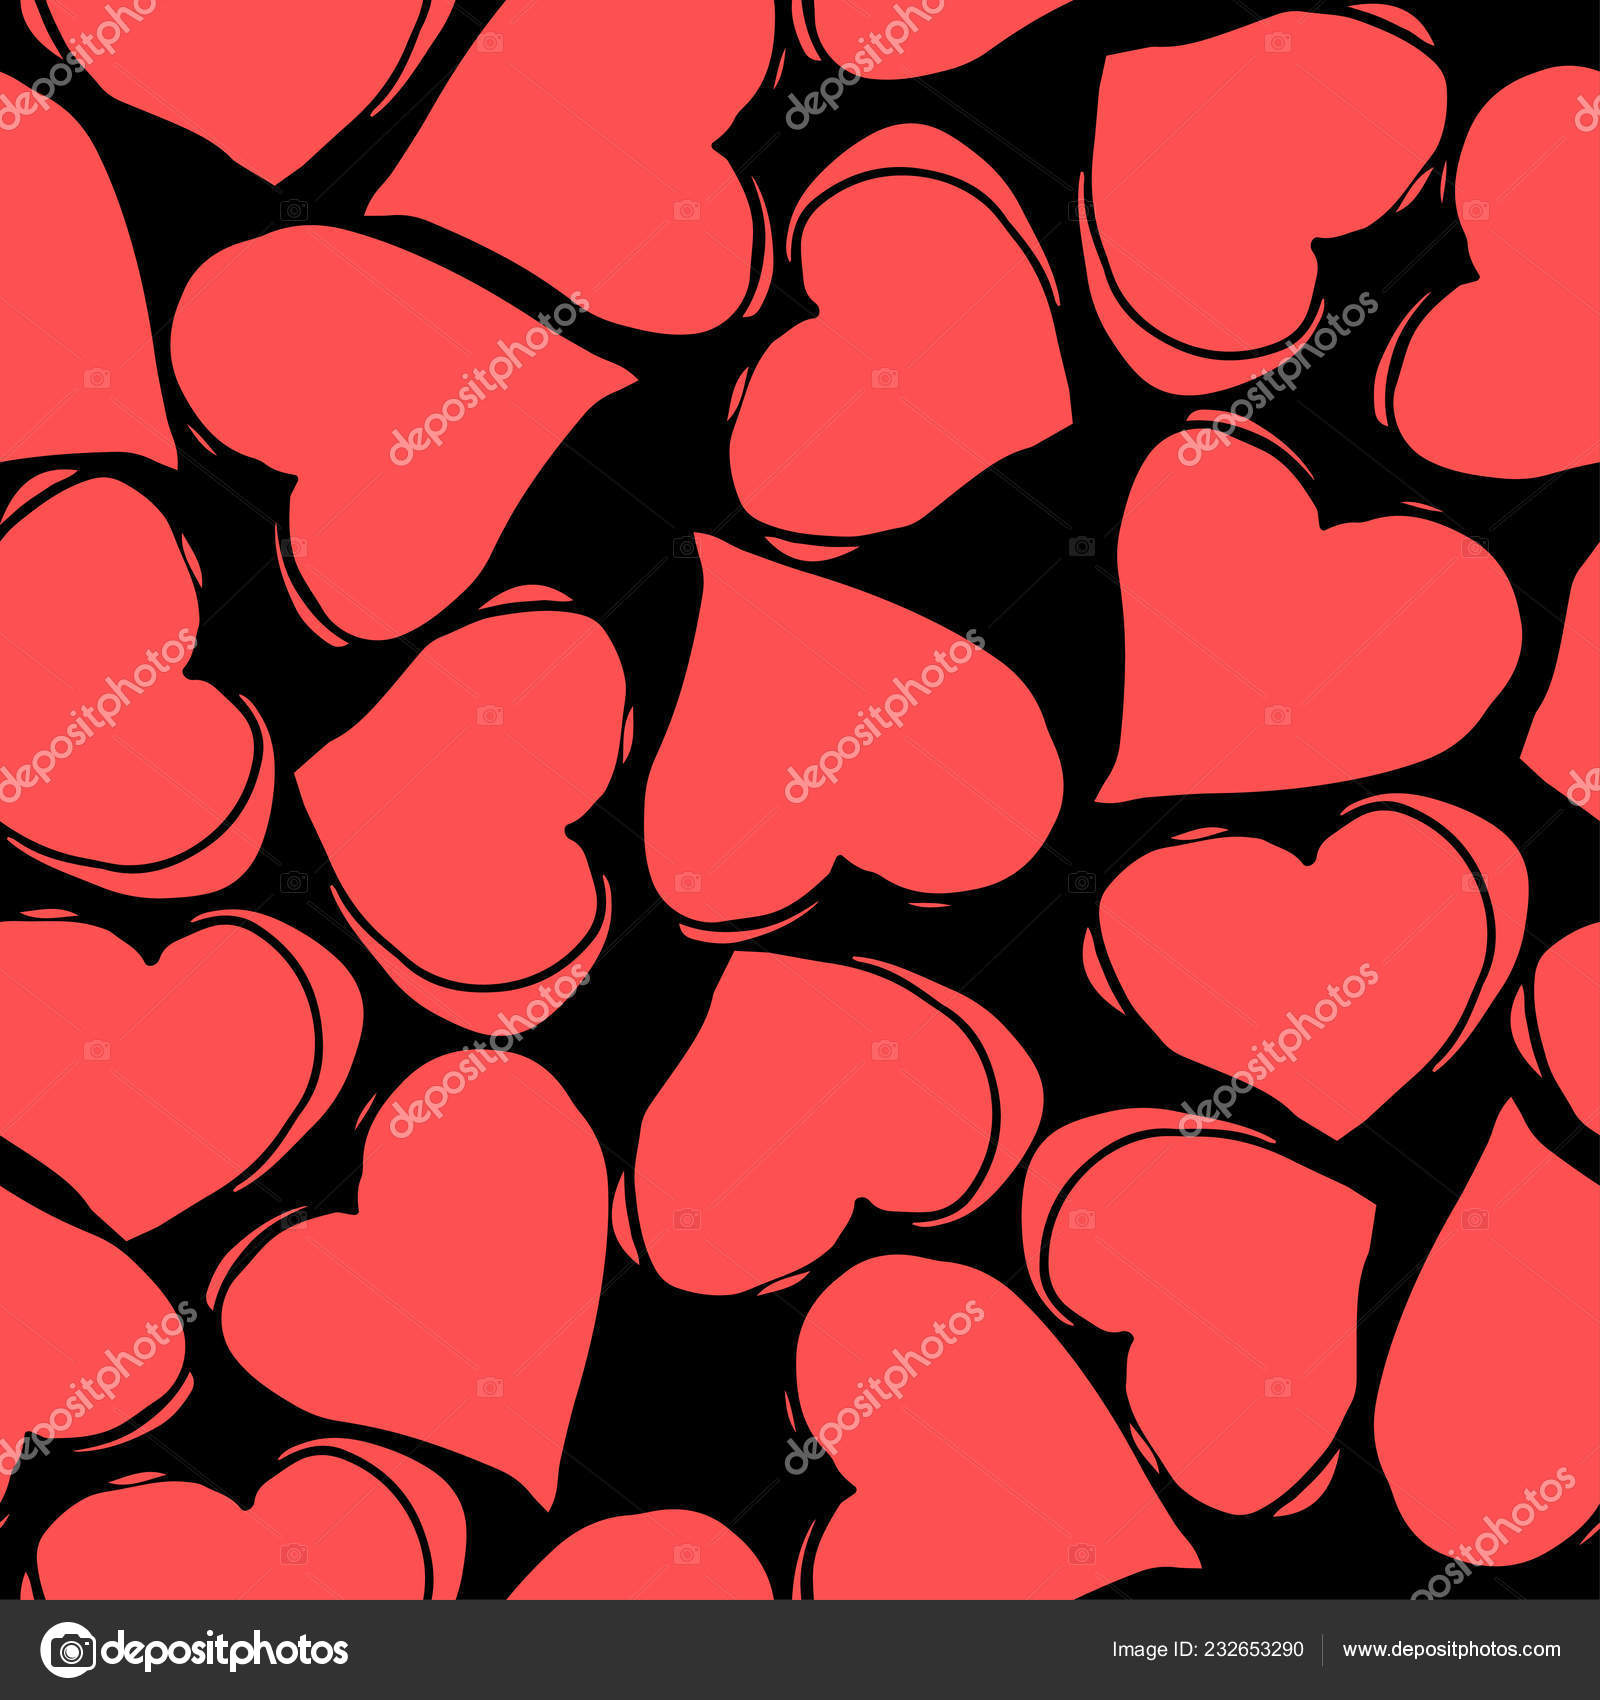 Red And Black Hearts Wallpaper Seamless Pattern With Red Hearts